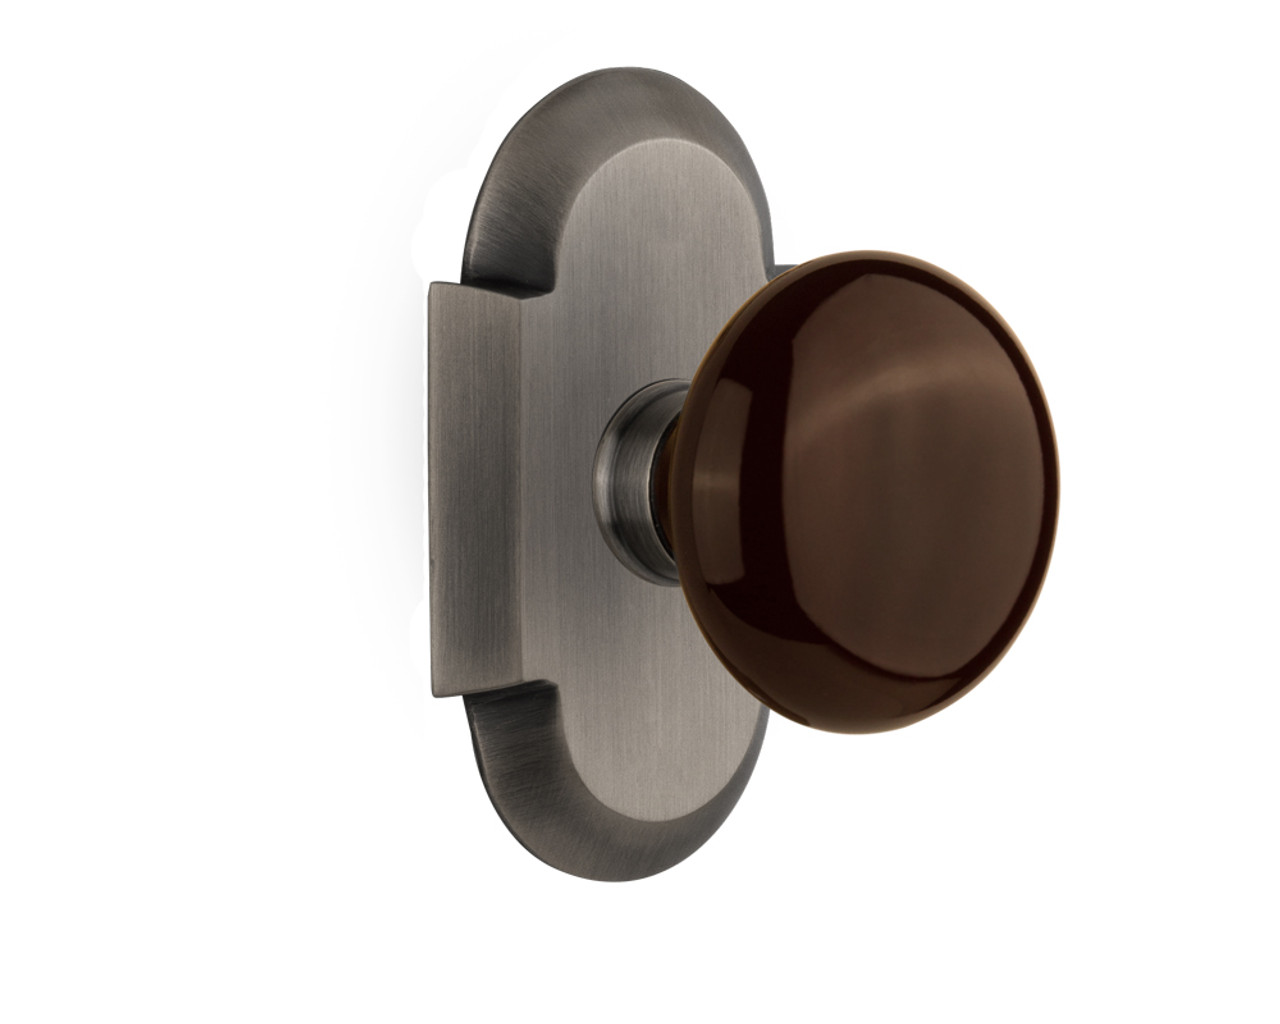 Nostalgic Warehouse Cottage Plate Double Dummy Brown Porcelain Door Knob in Antique Pewter (NW-713171)